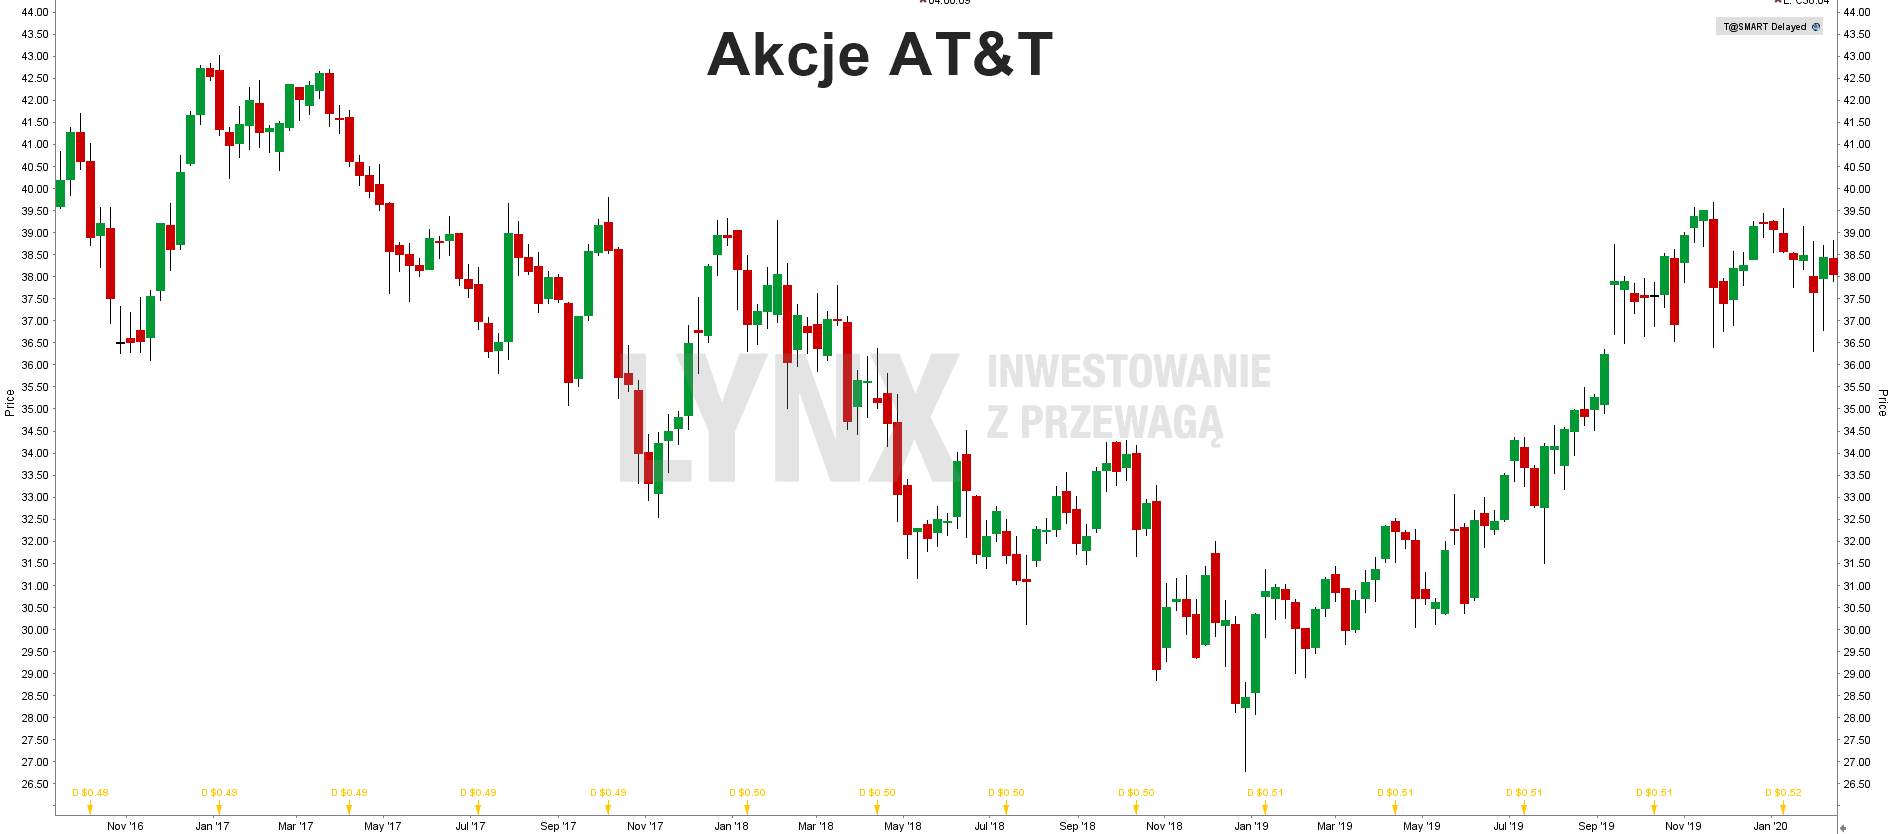 Akcje AT&T